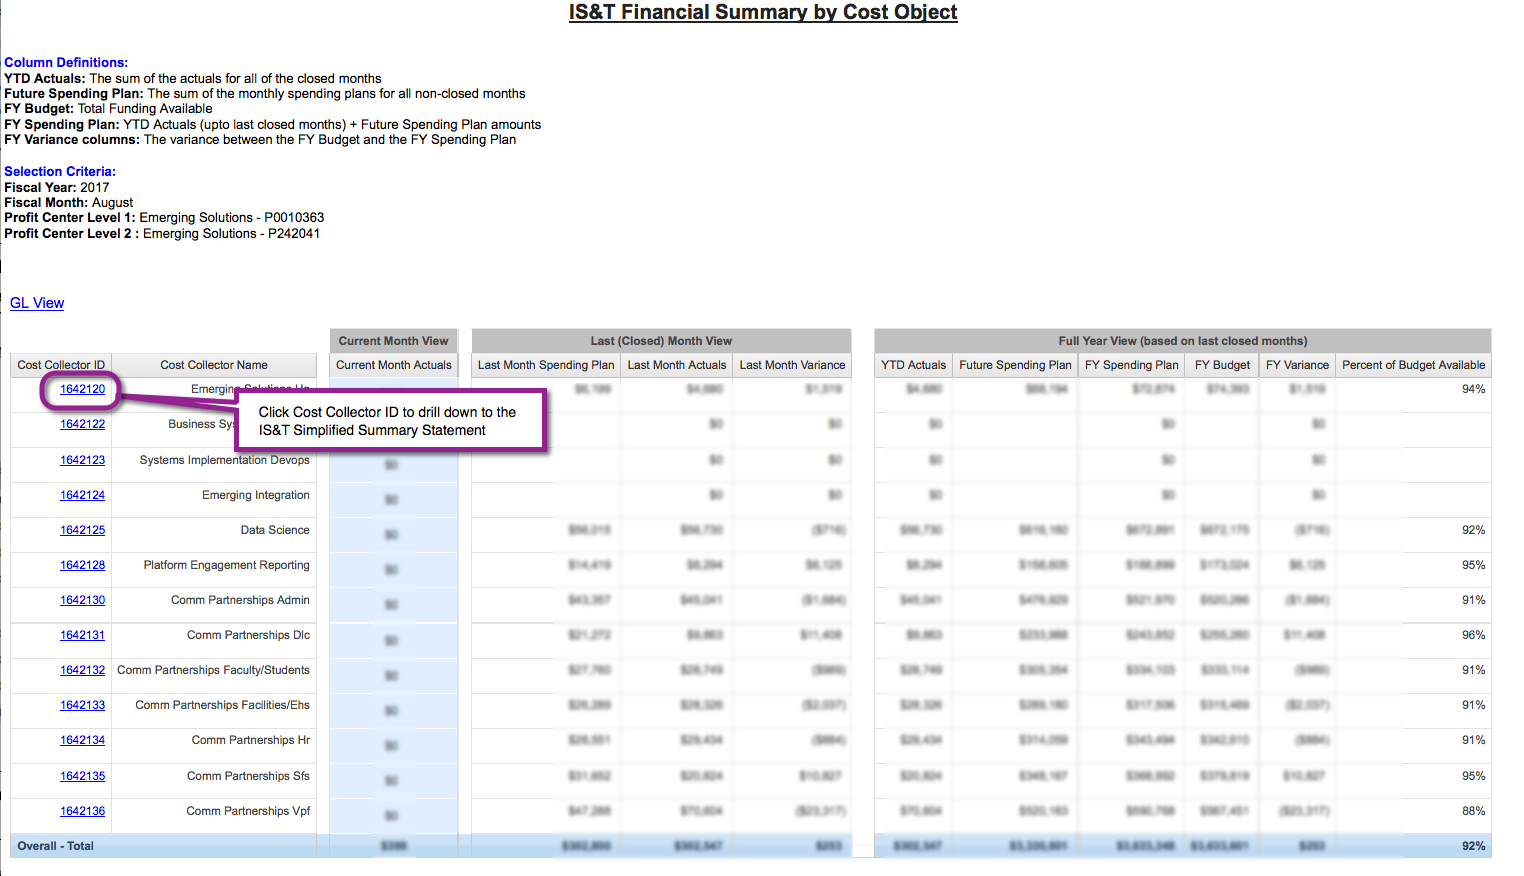 Financial Summary by Cost Object sample